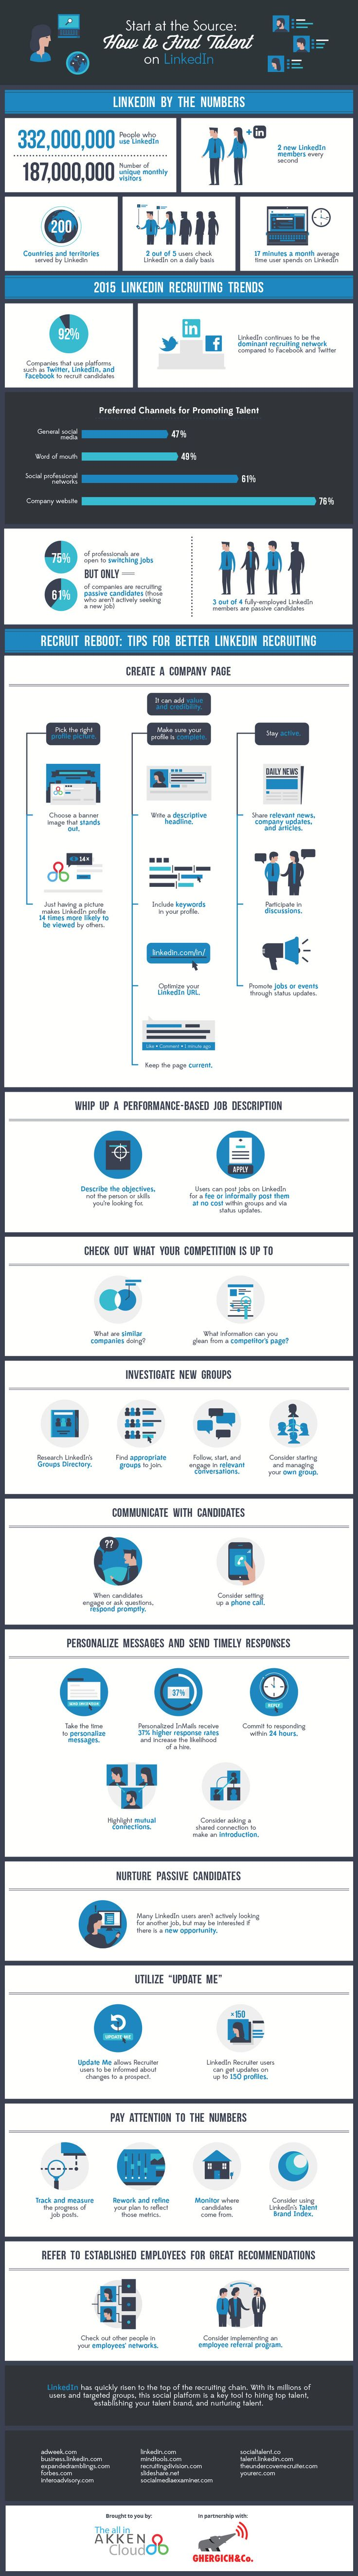 How to Find Talent on LinkedIn Infographic http://www.akkencloud.com/how-to-find-talent-on-linkedin/